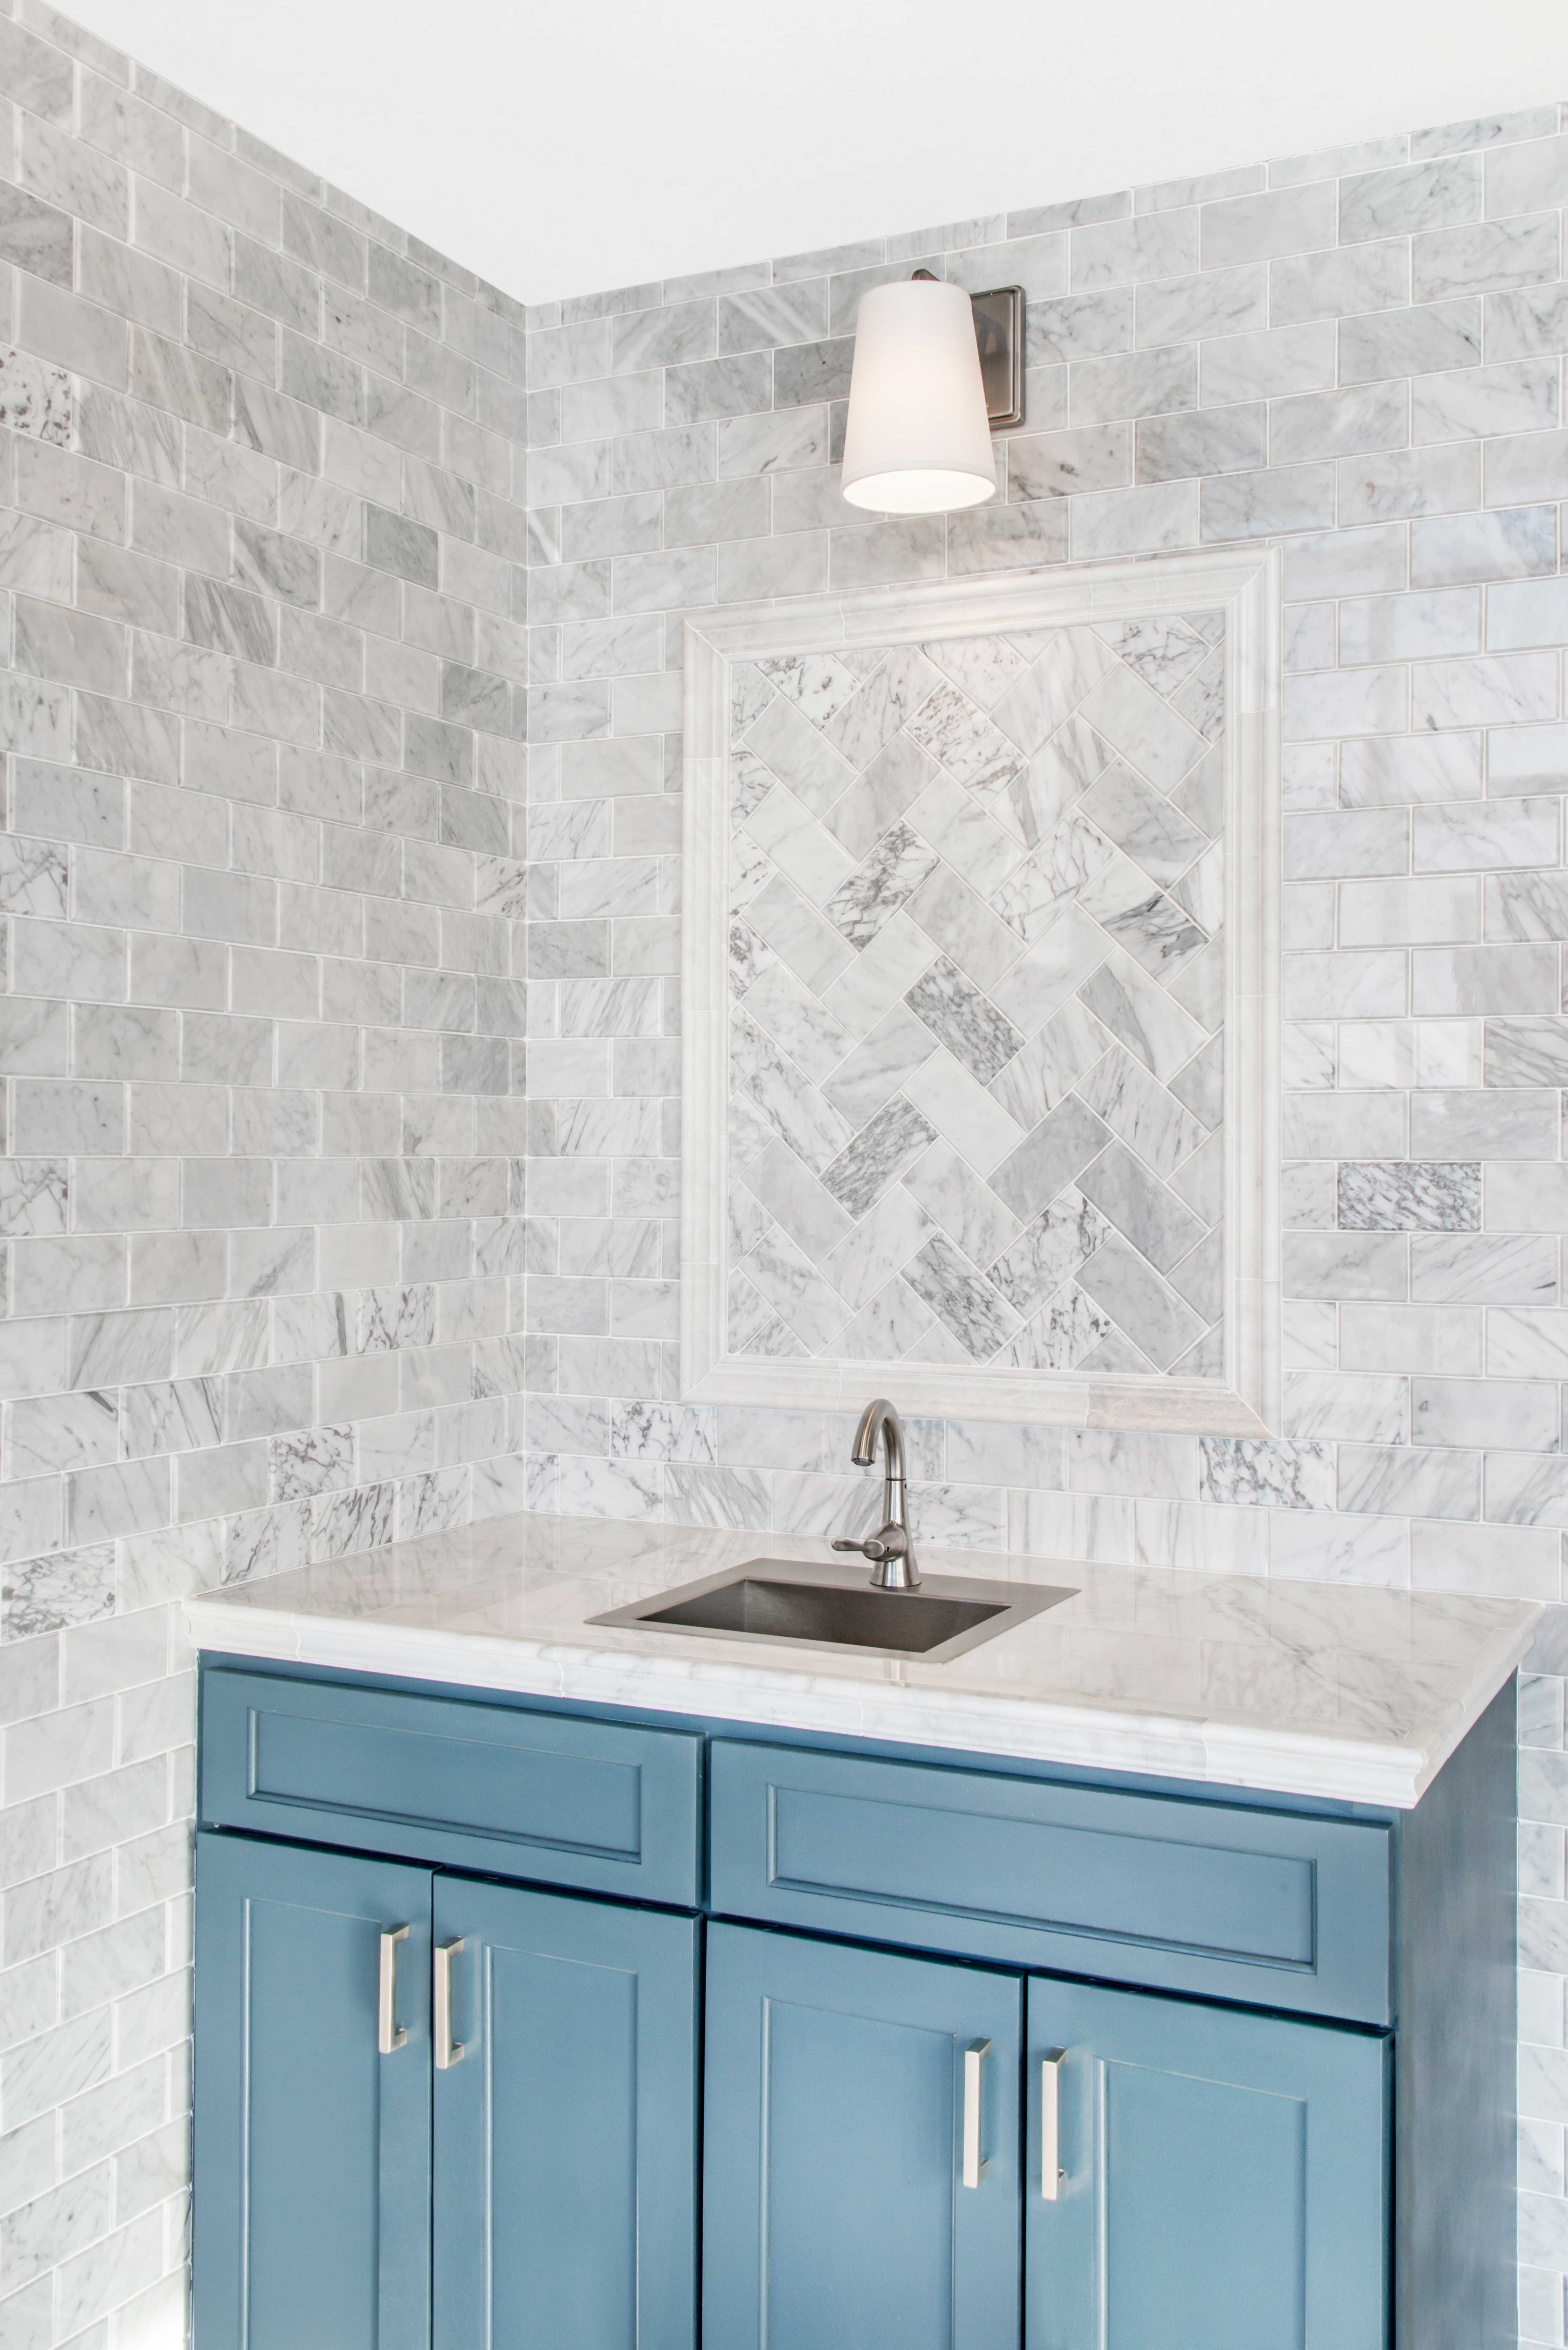 Infused with dramatic grey veining, this beveled subway tile adds ...